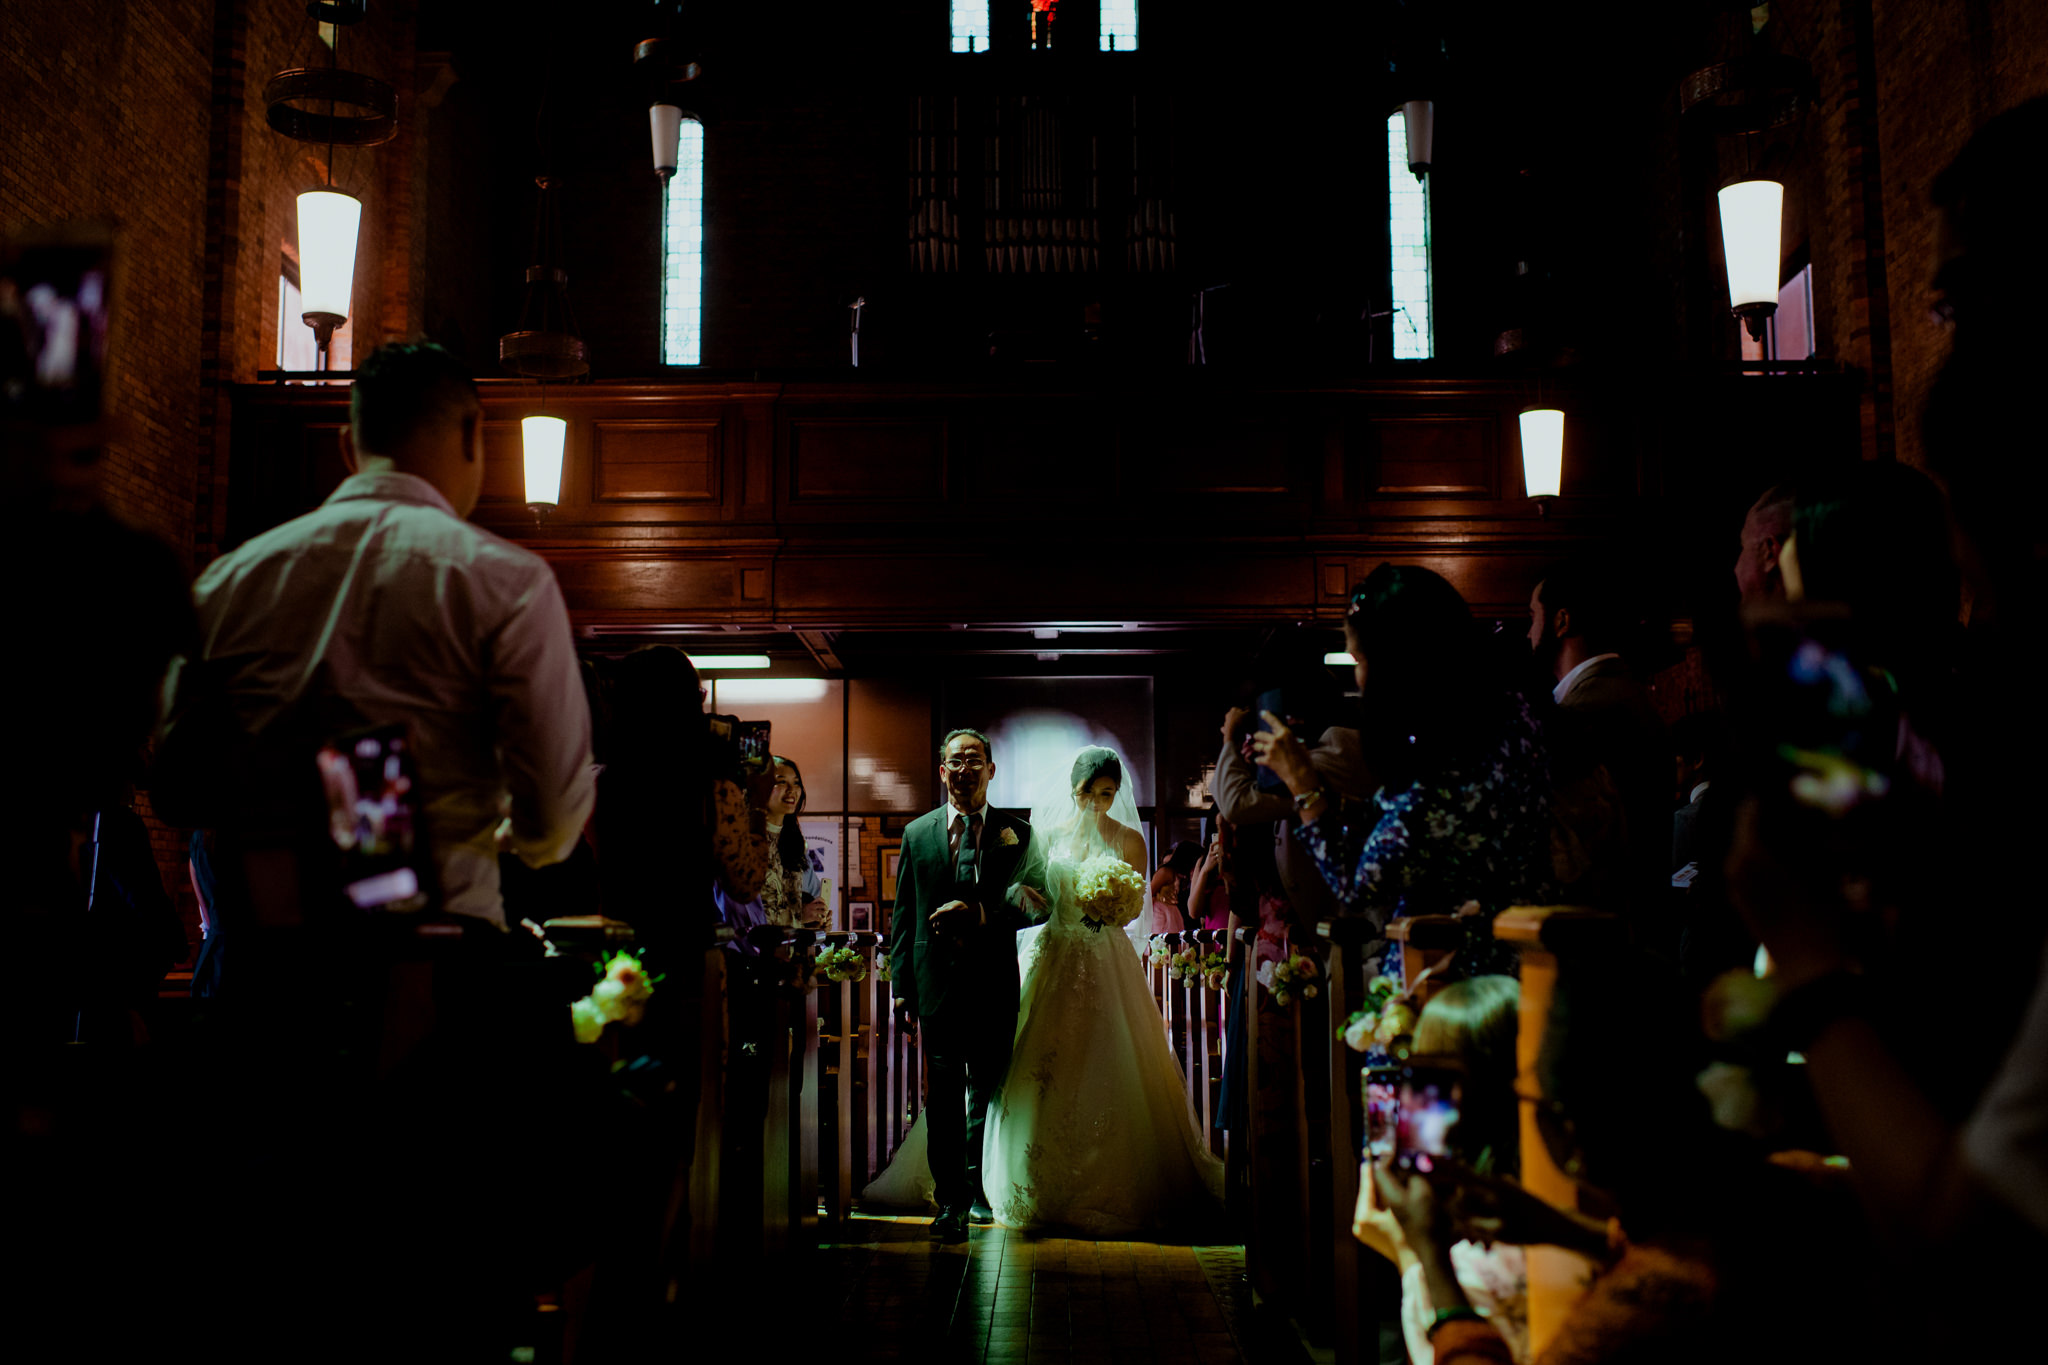 Bride and her father walk down the aisle of a dark church but the bride is illuminated by a green spotlight